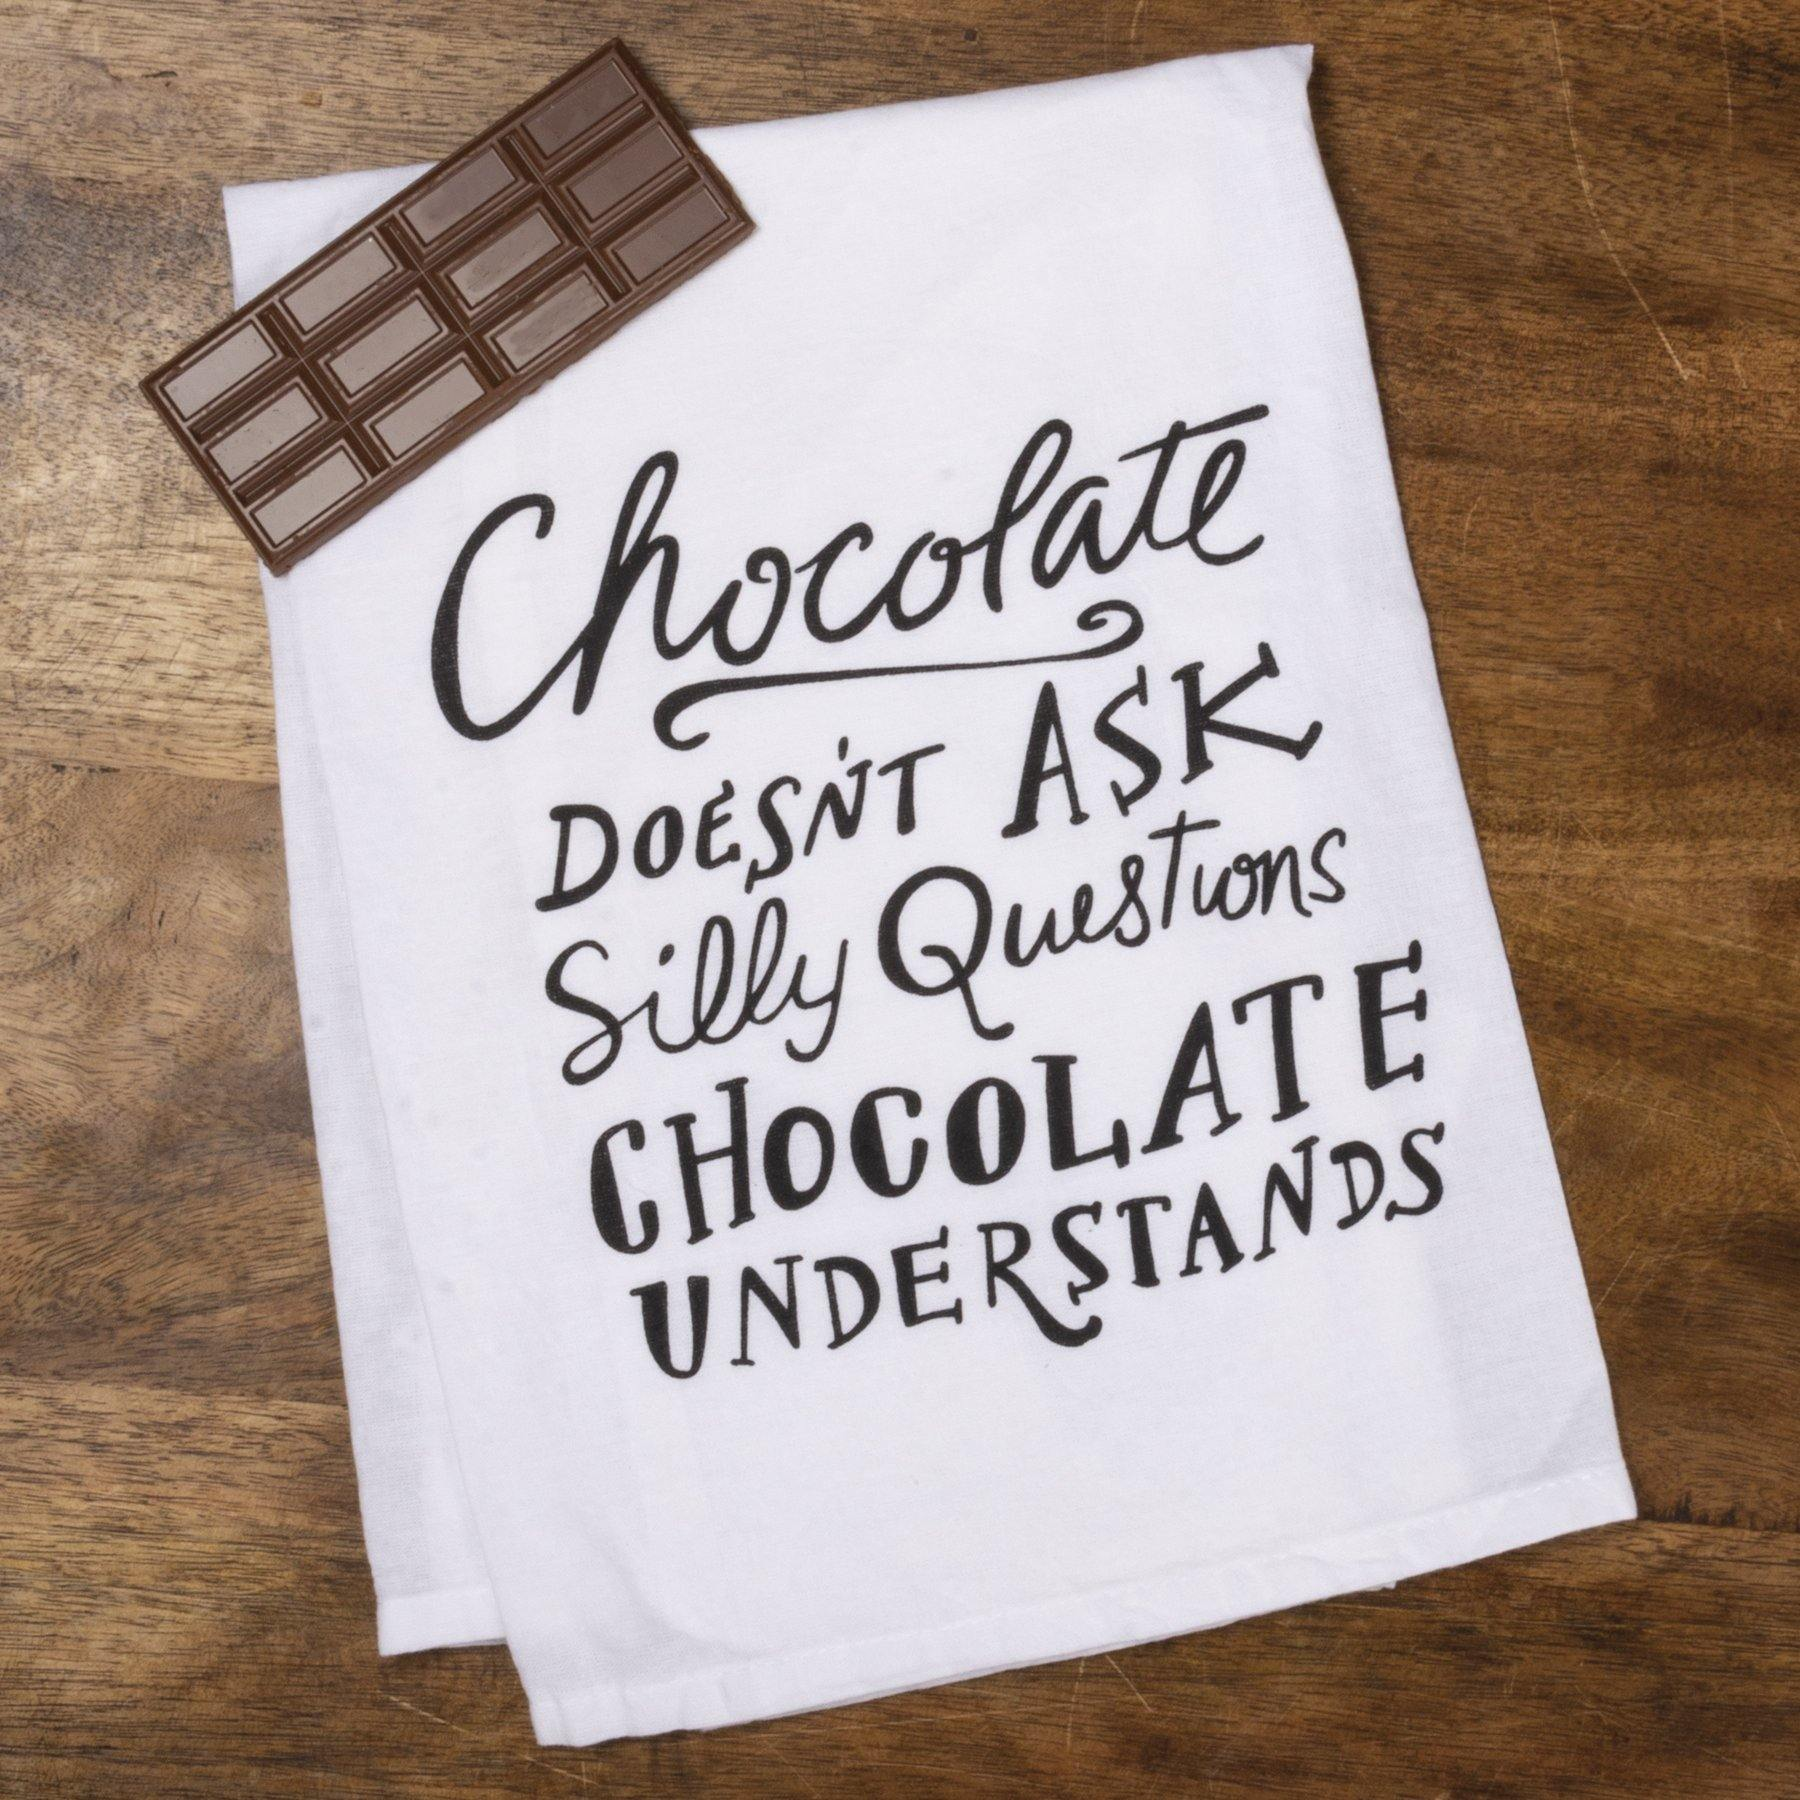 Primitives By Kathy - Chocolate Doesn't Ask Silly Questions - Dish Towel